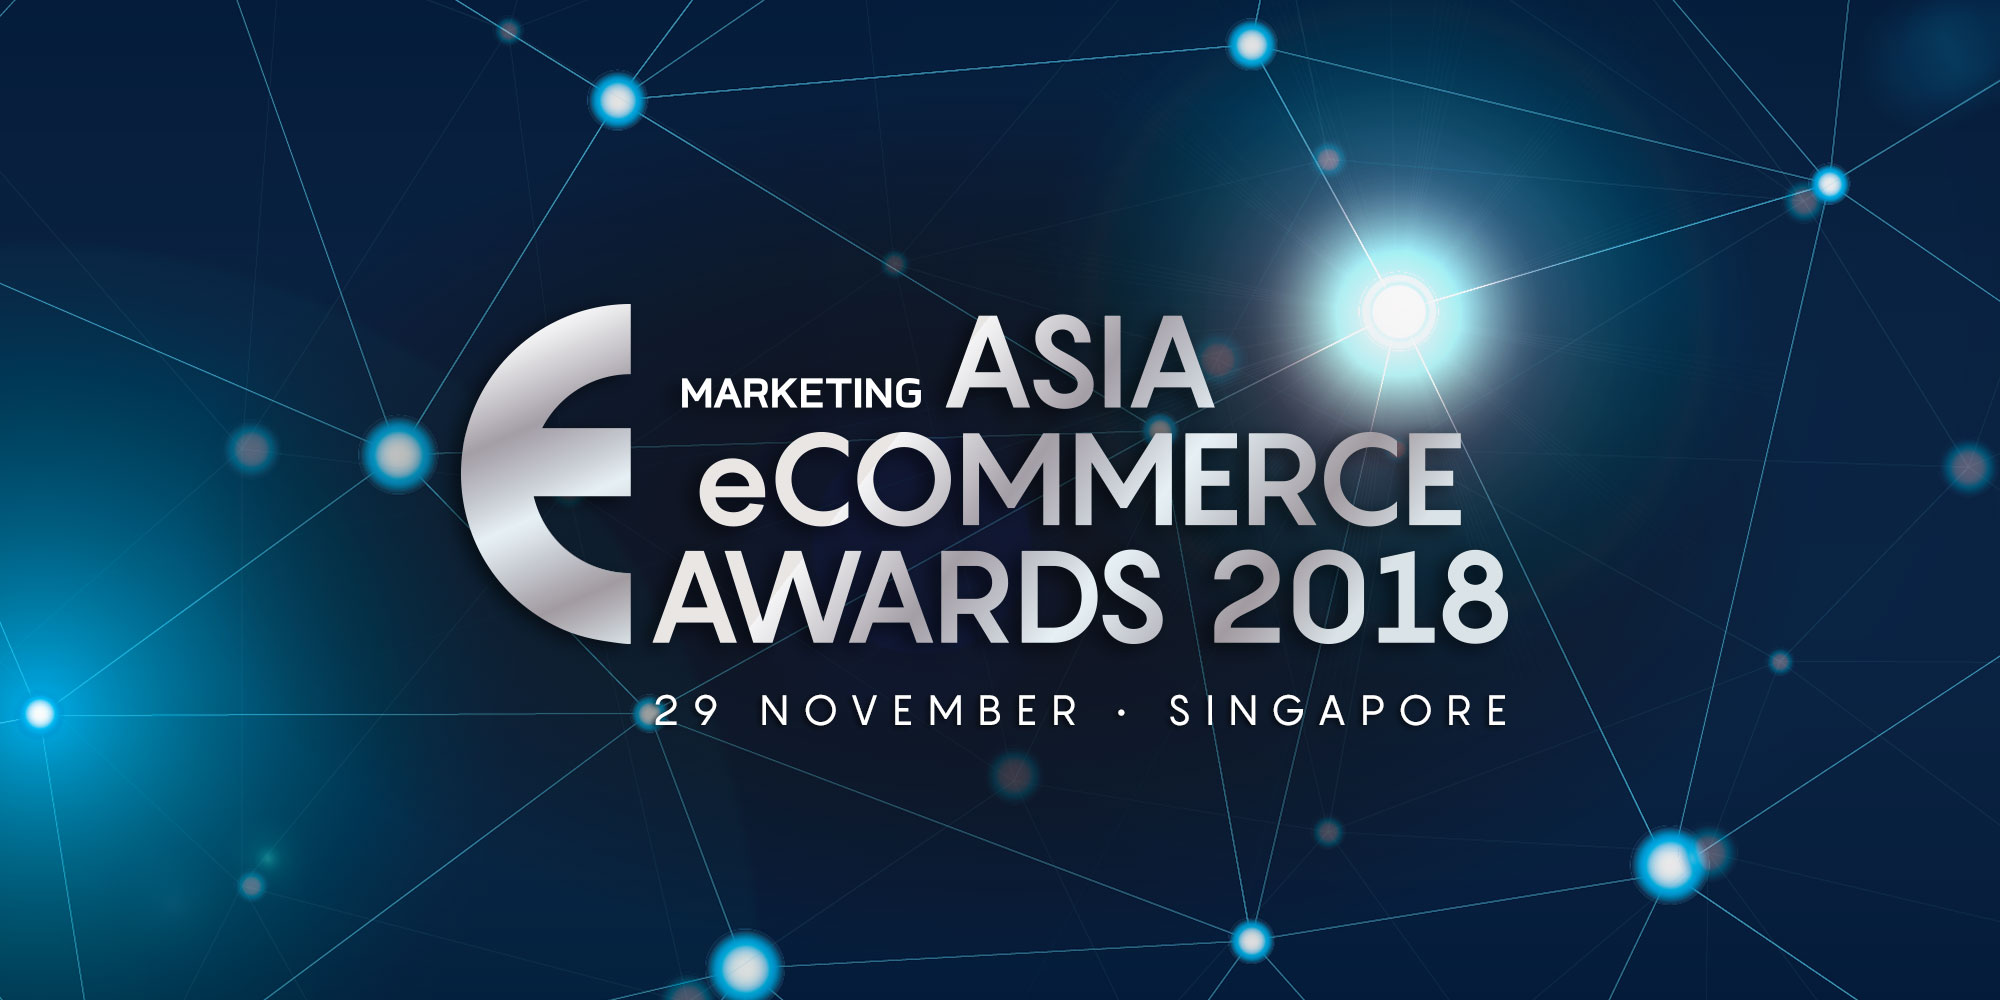 Asia eCommerce Awards 2018